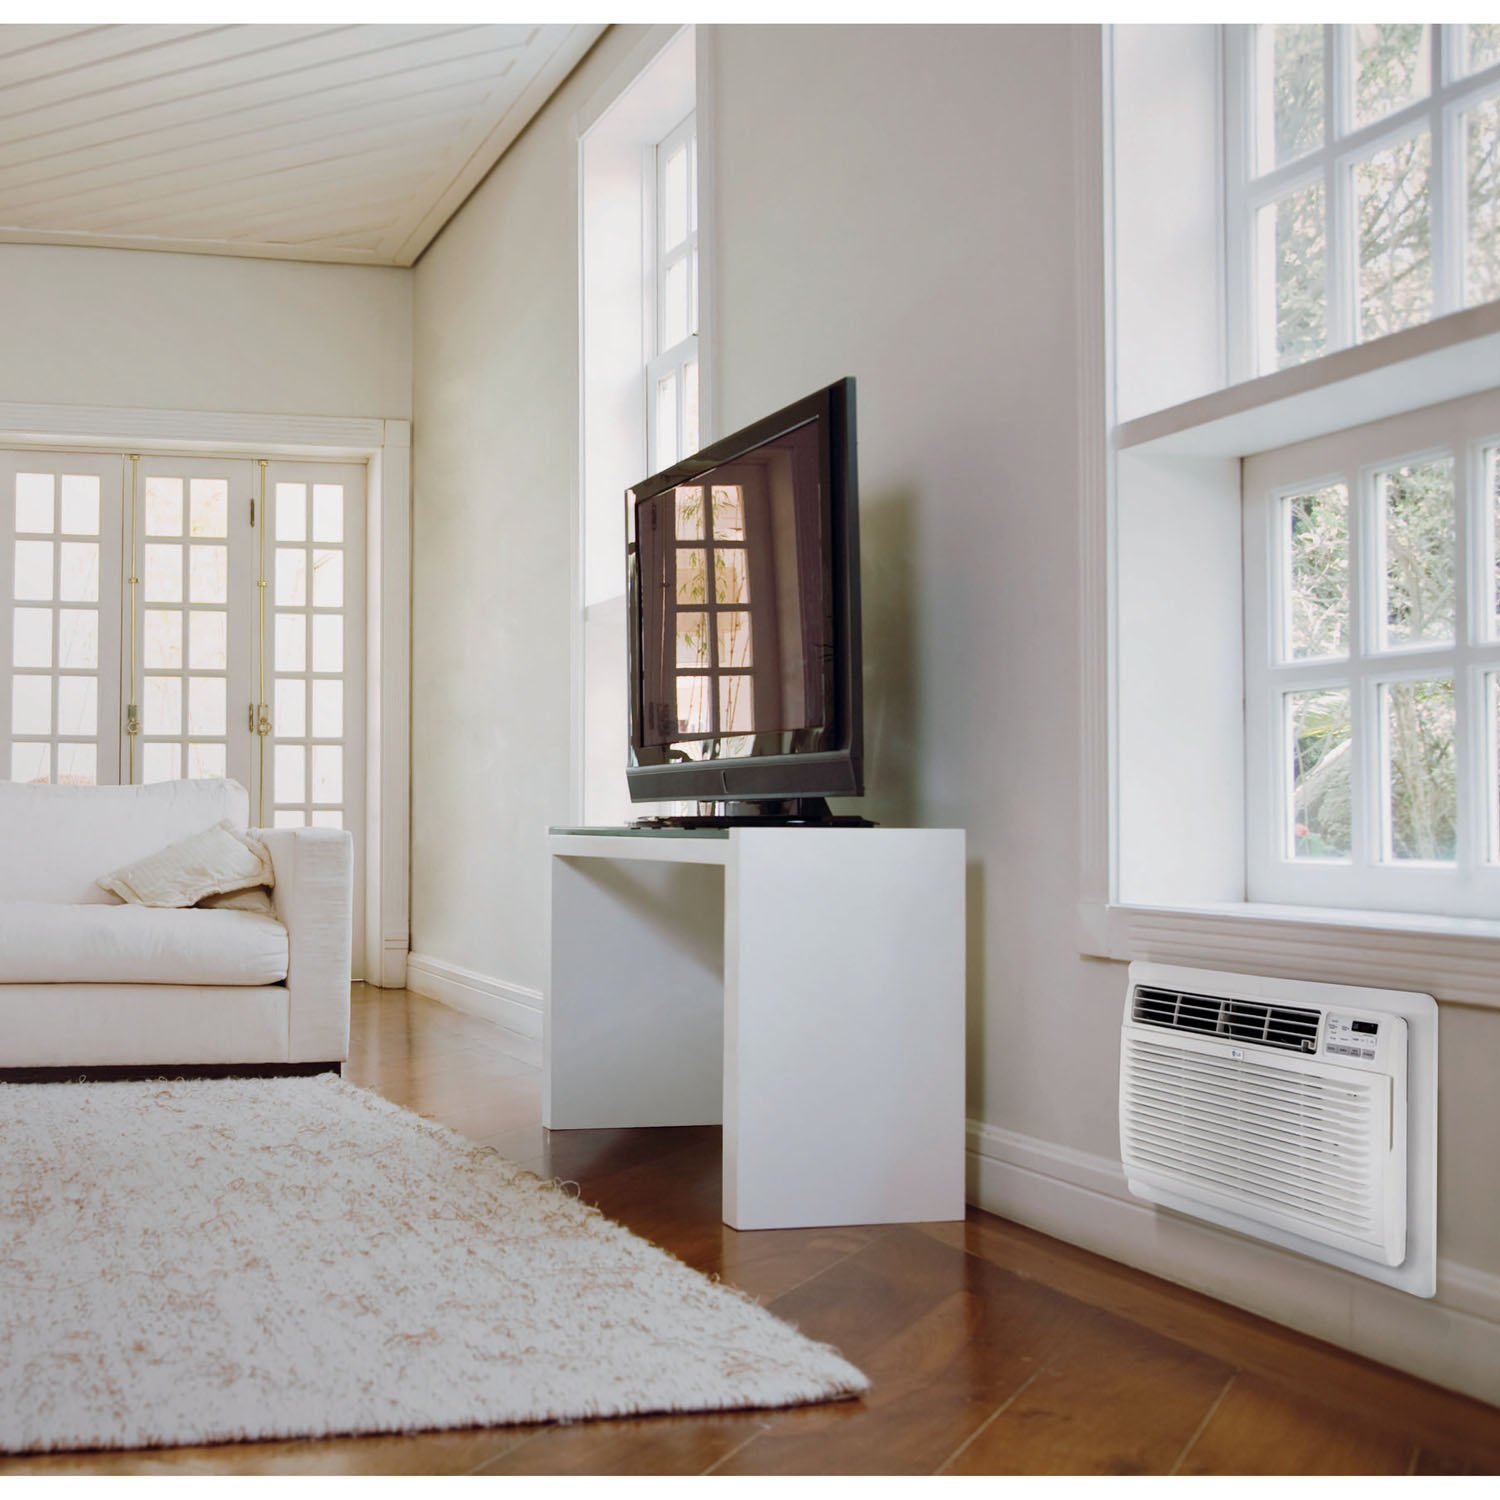 How Many Types Of Air Conditioners Are There Home Tips